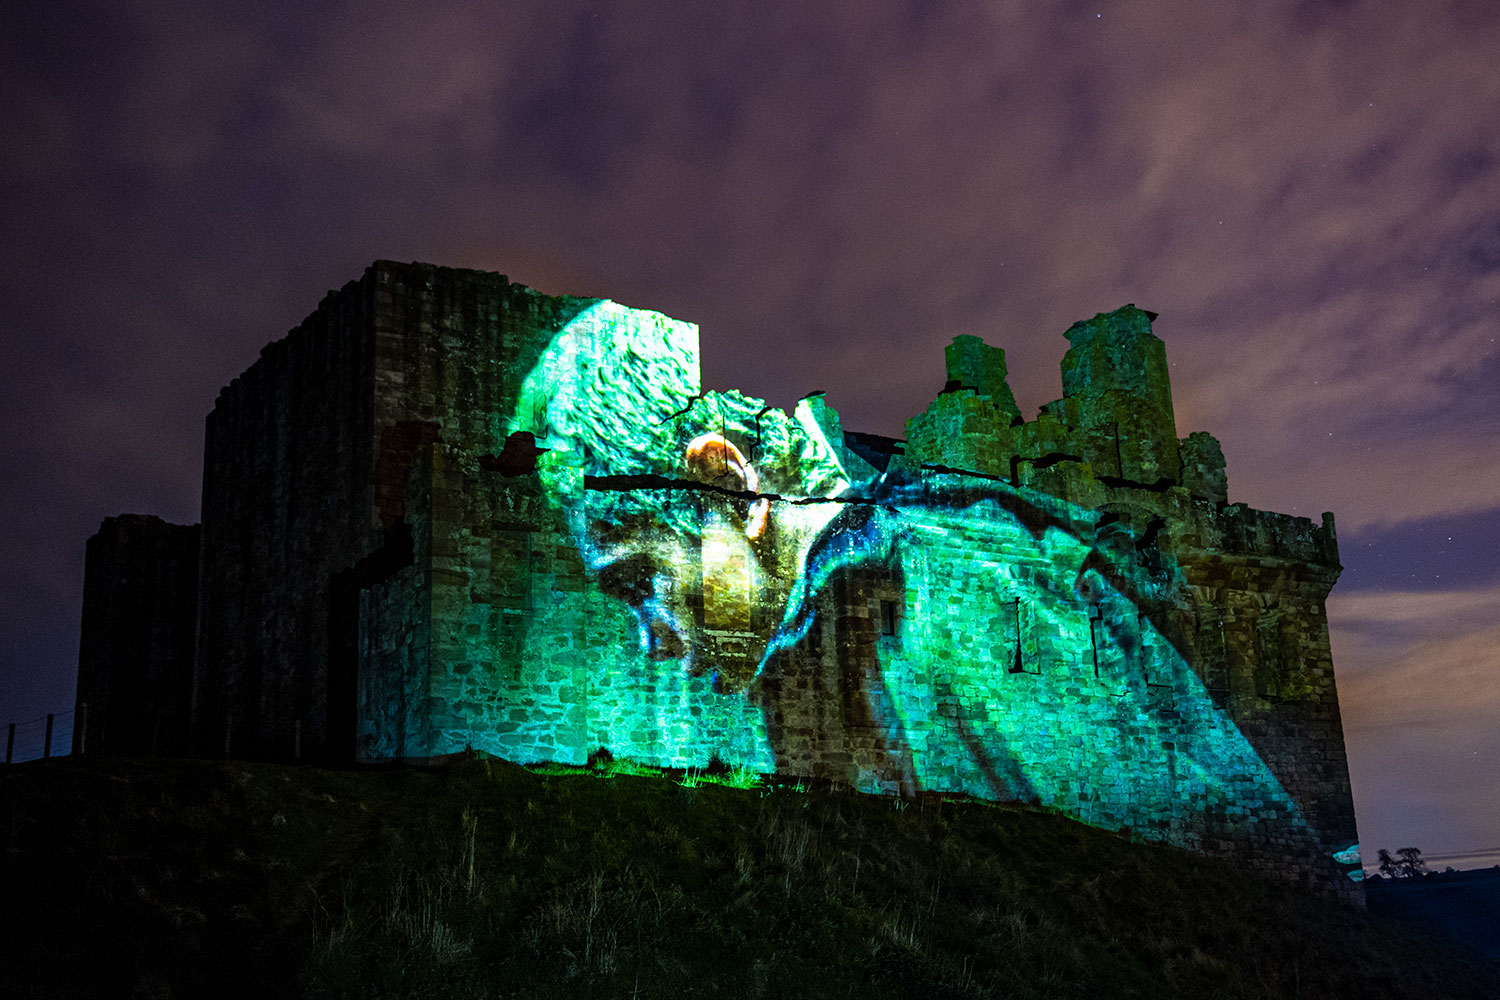 Dominic Fike, Projection film, video projection mapping, projection mapping technology